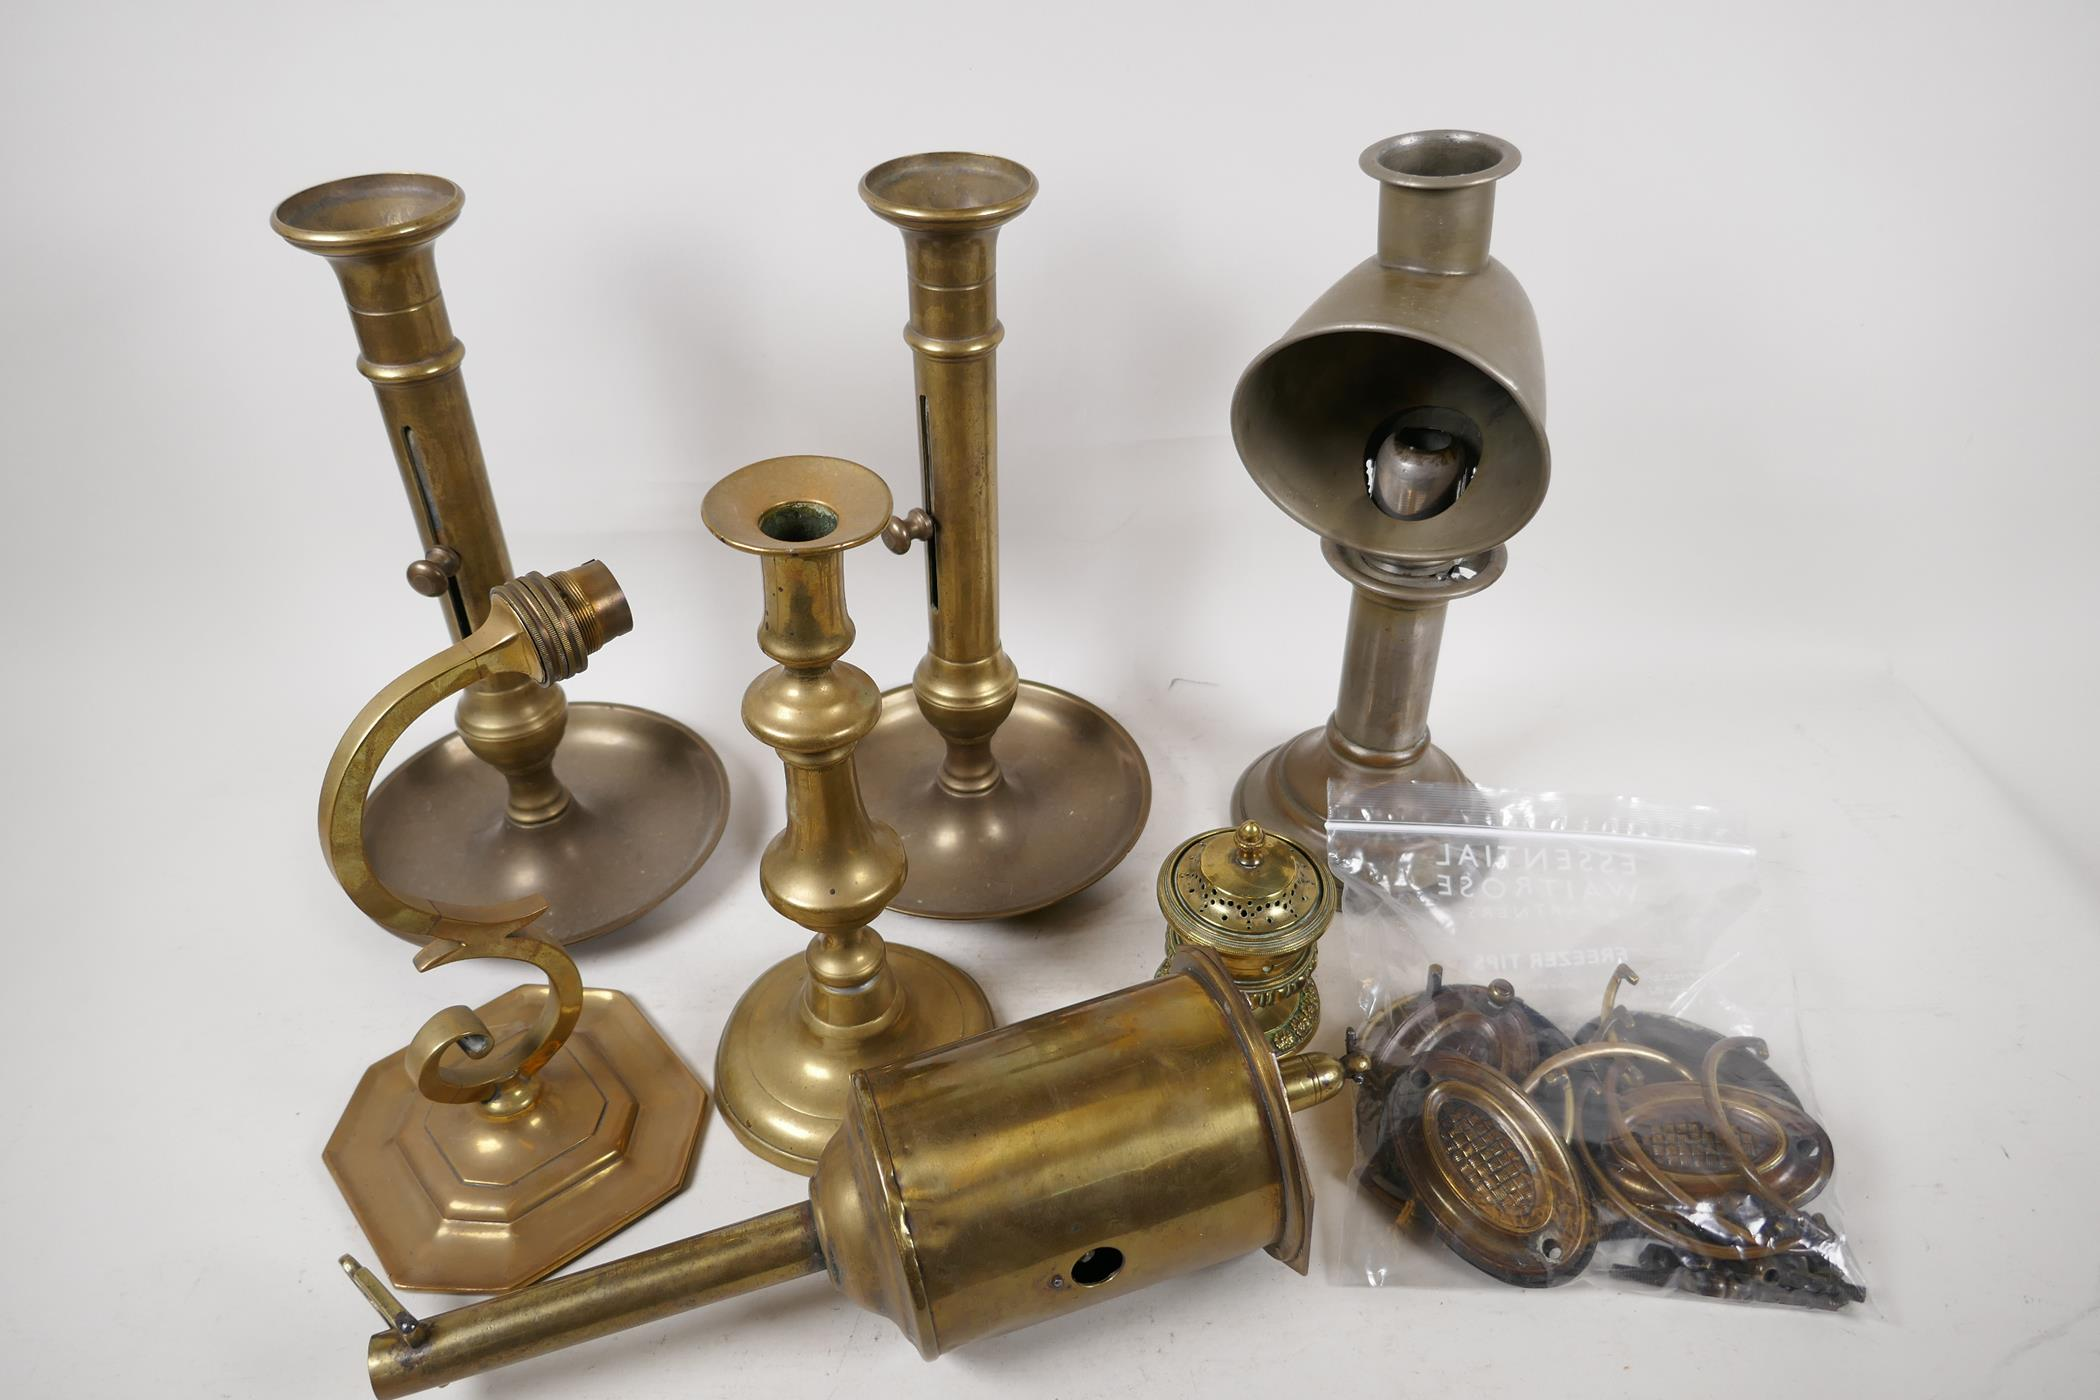 A quantity of brassware including a C19th meat jack, ejector candlesticks, drawer handles etc